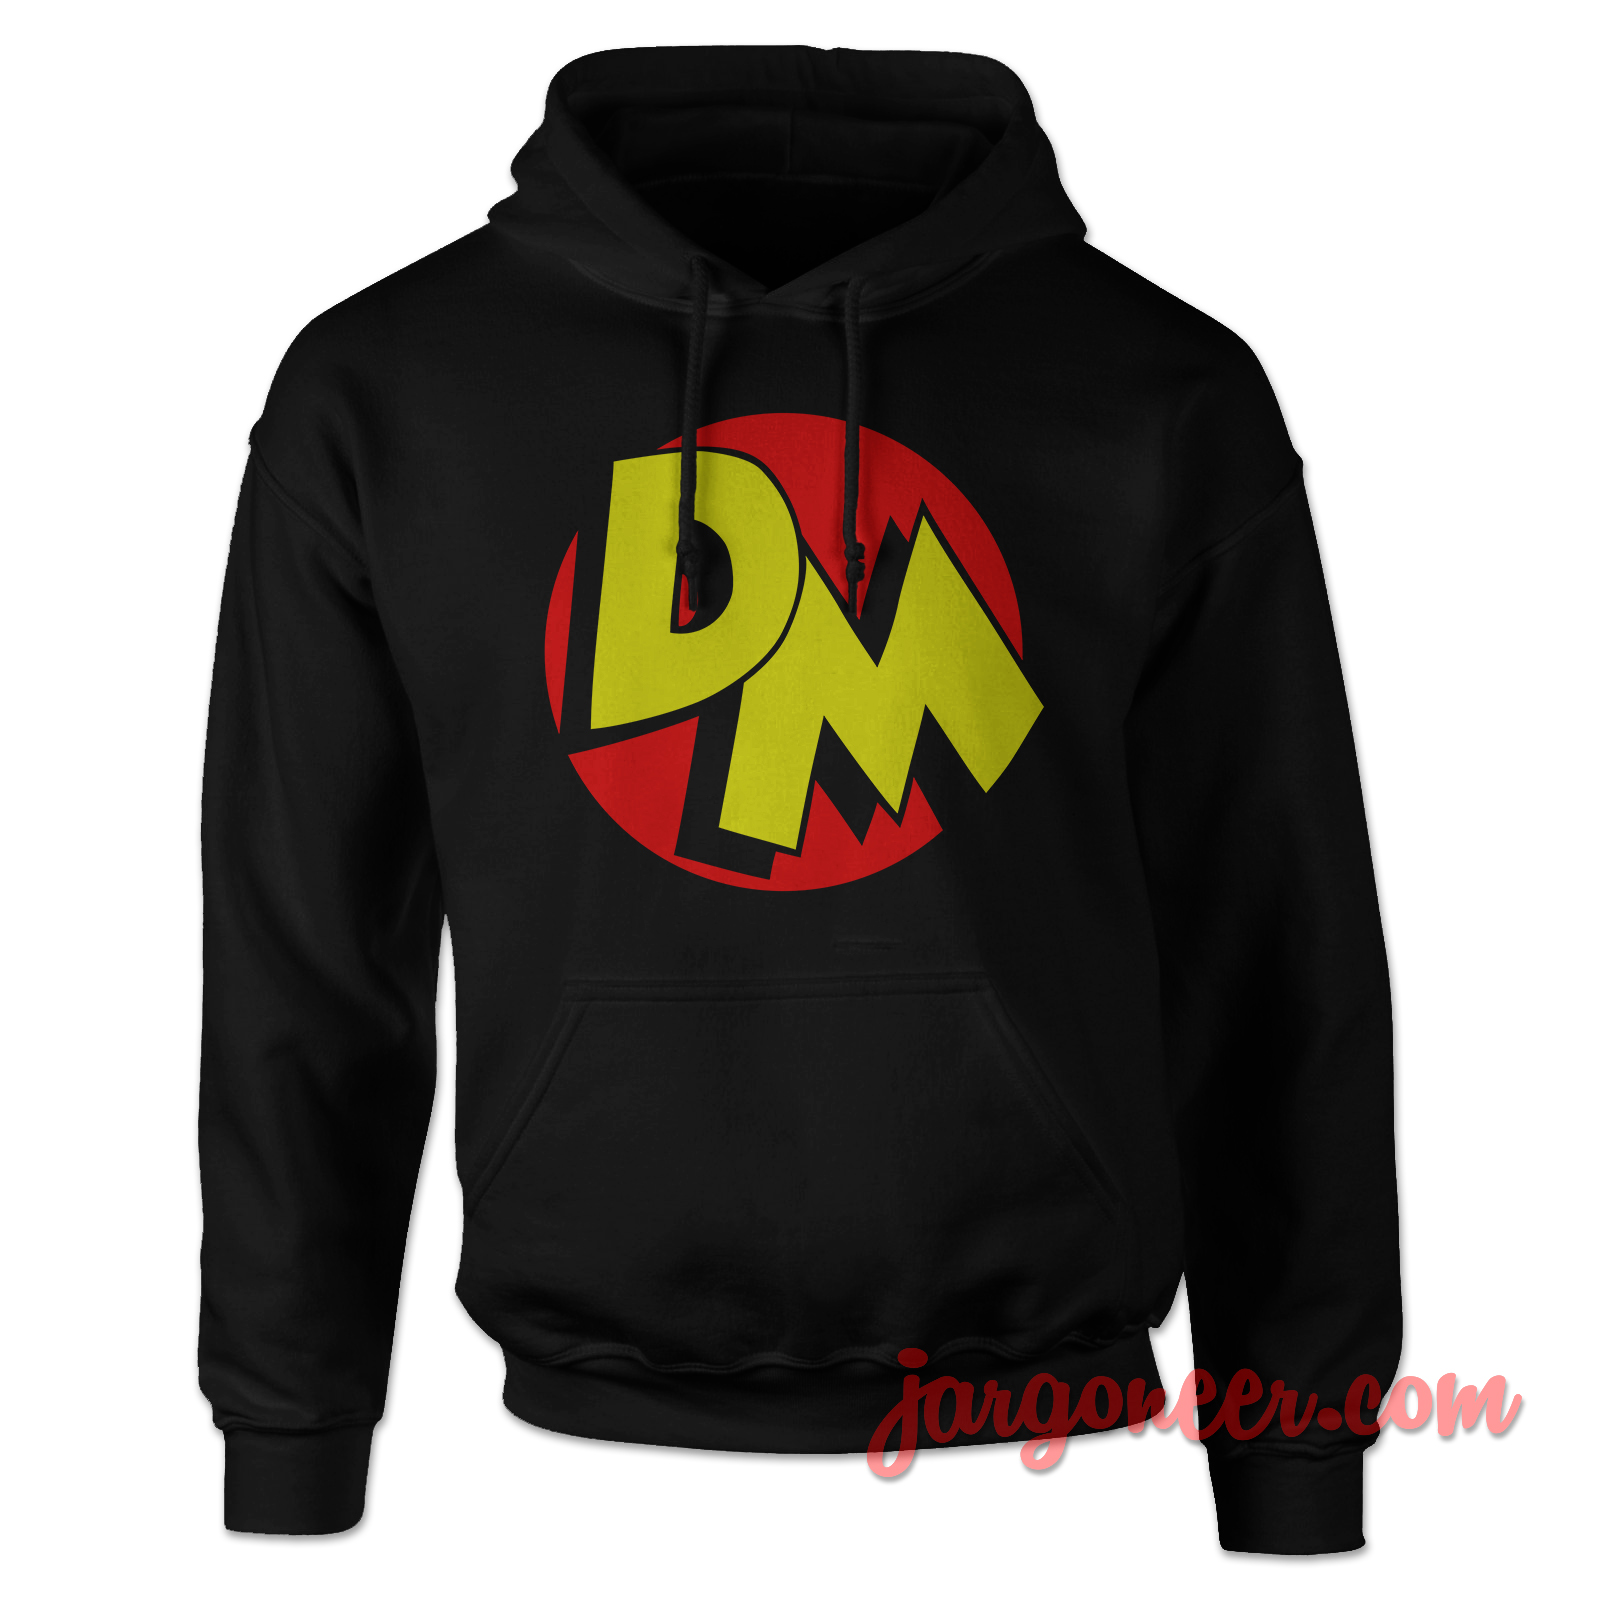 Cool graphic hoodies